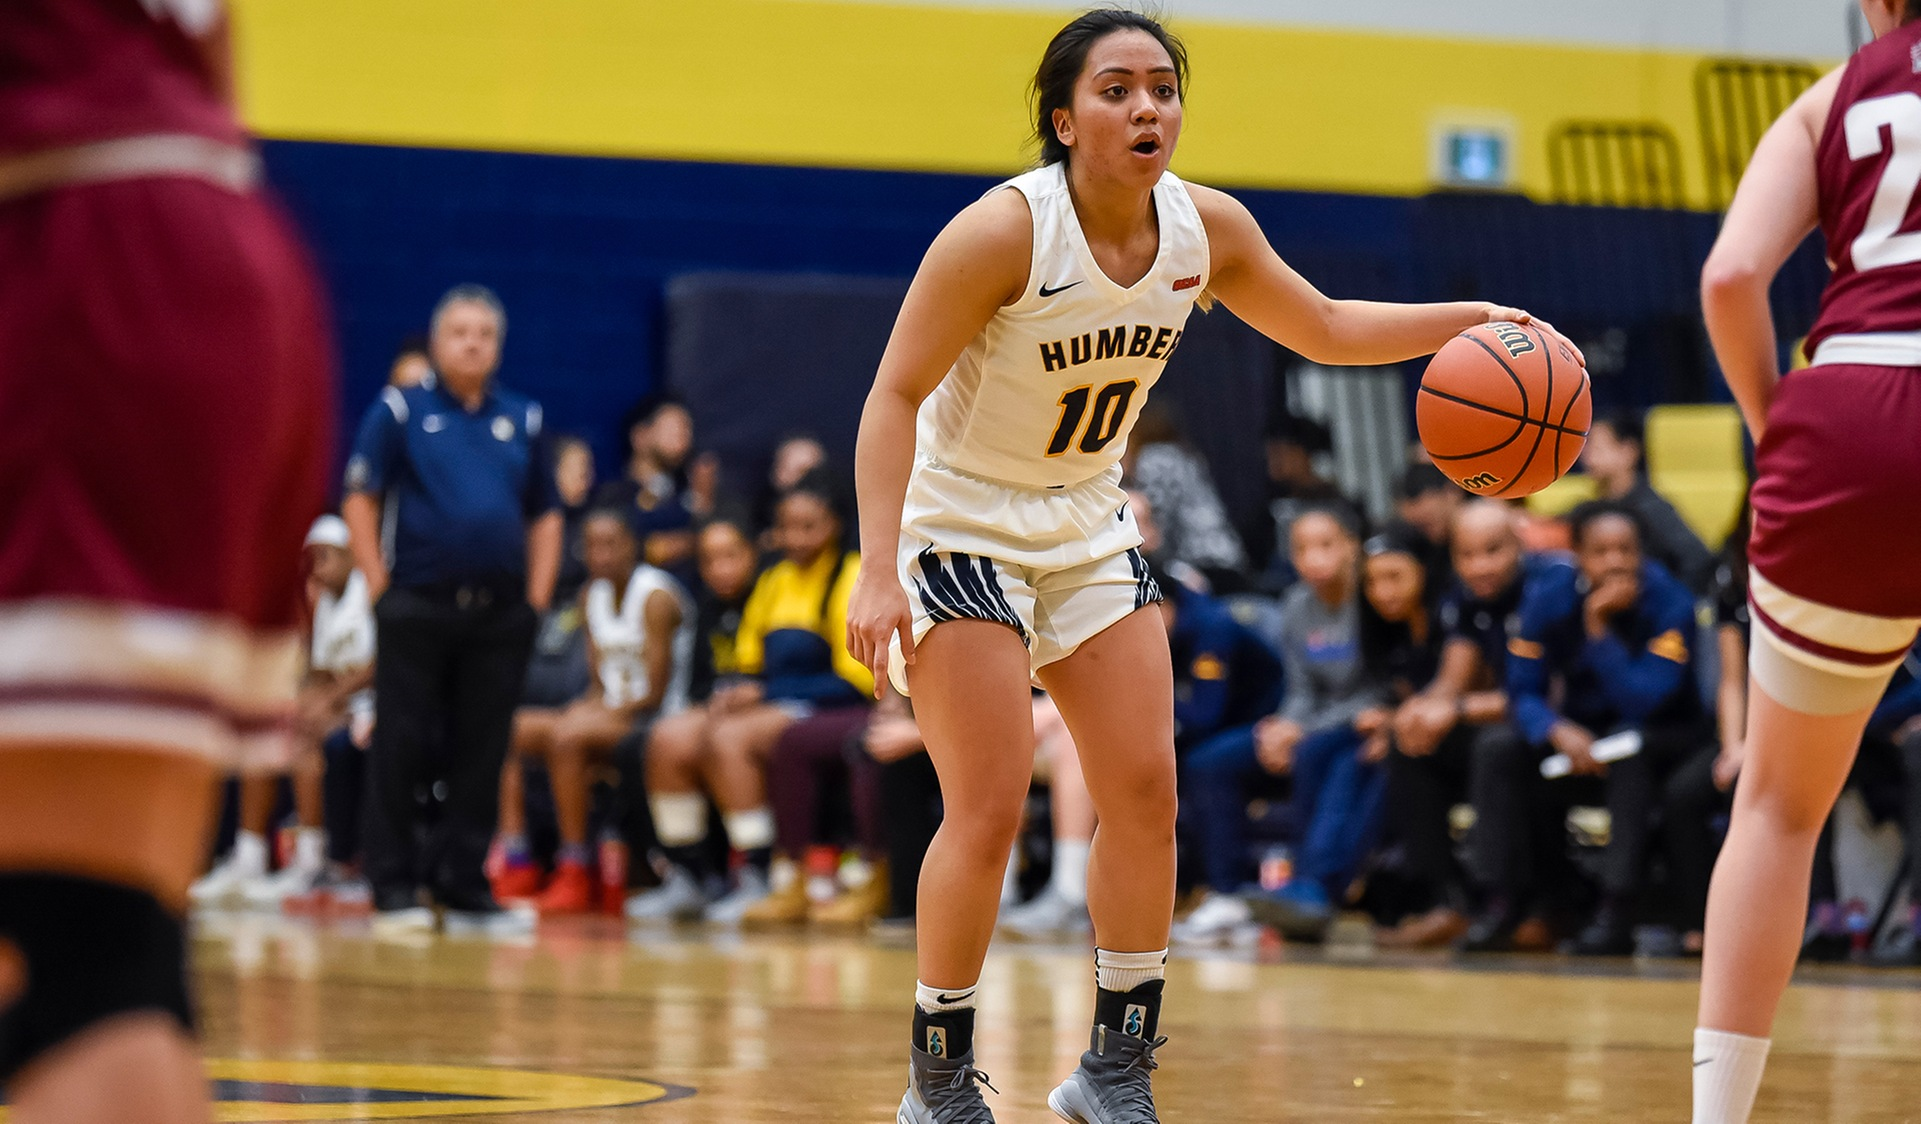 No. 11 WOMEN'S BASKETBALL HITS THE ROAD FOR SAULT